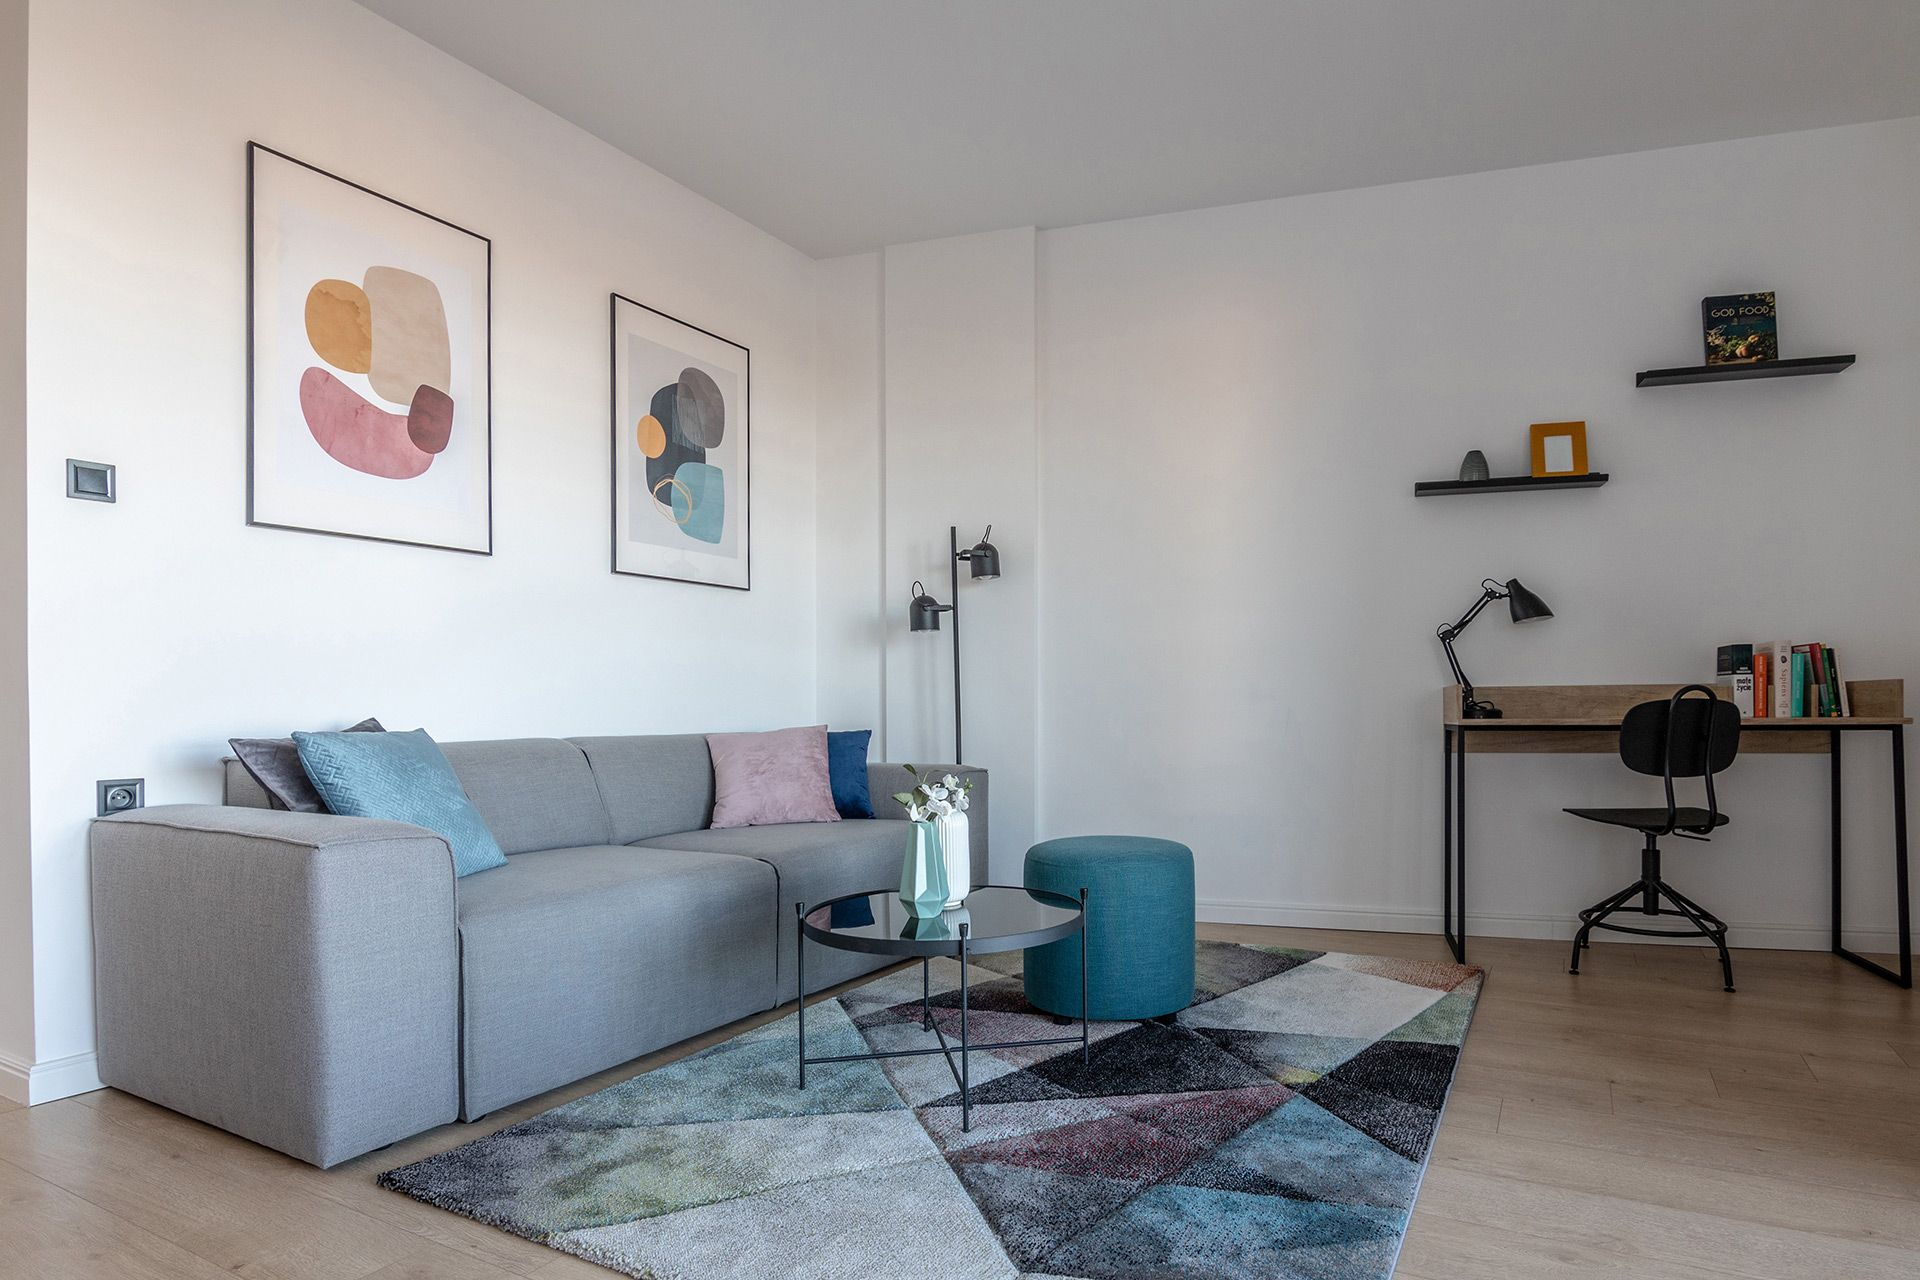 Studio - Large apartment to rent in Warsaw UPR-A-070-2